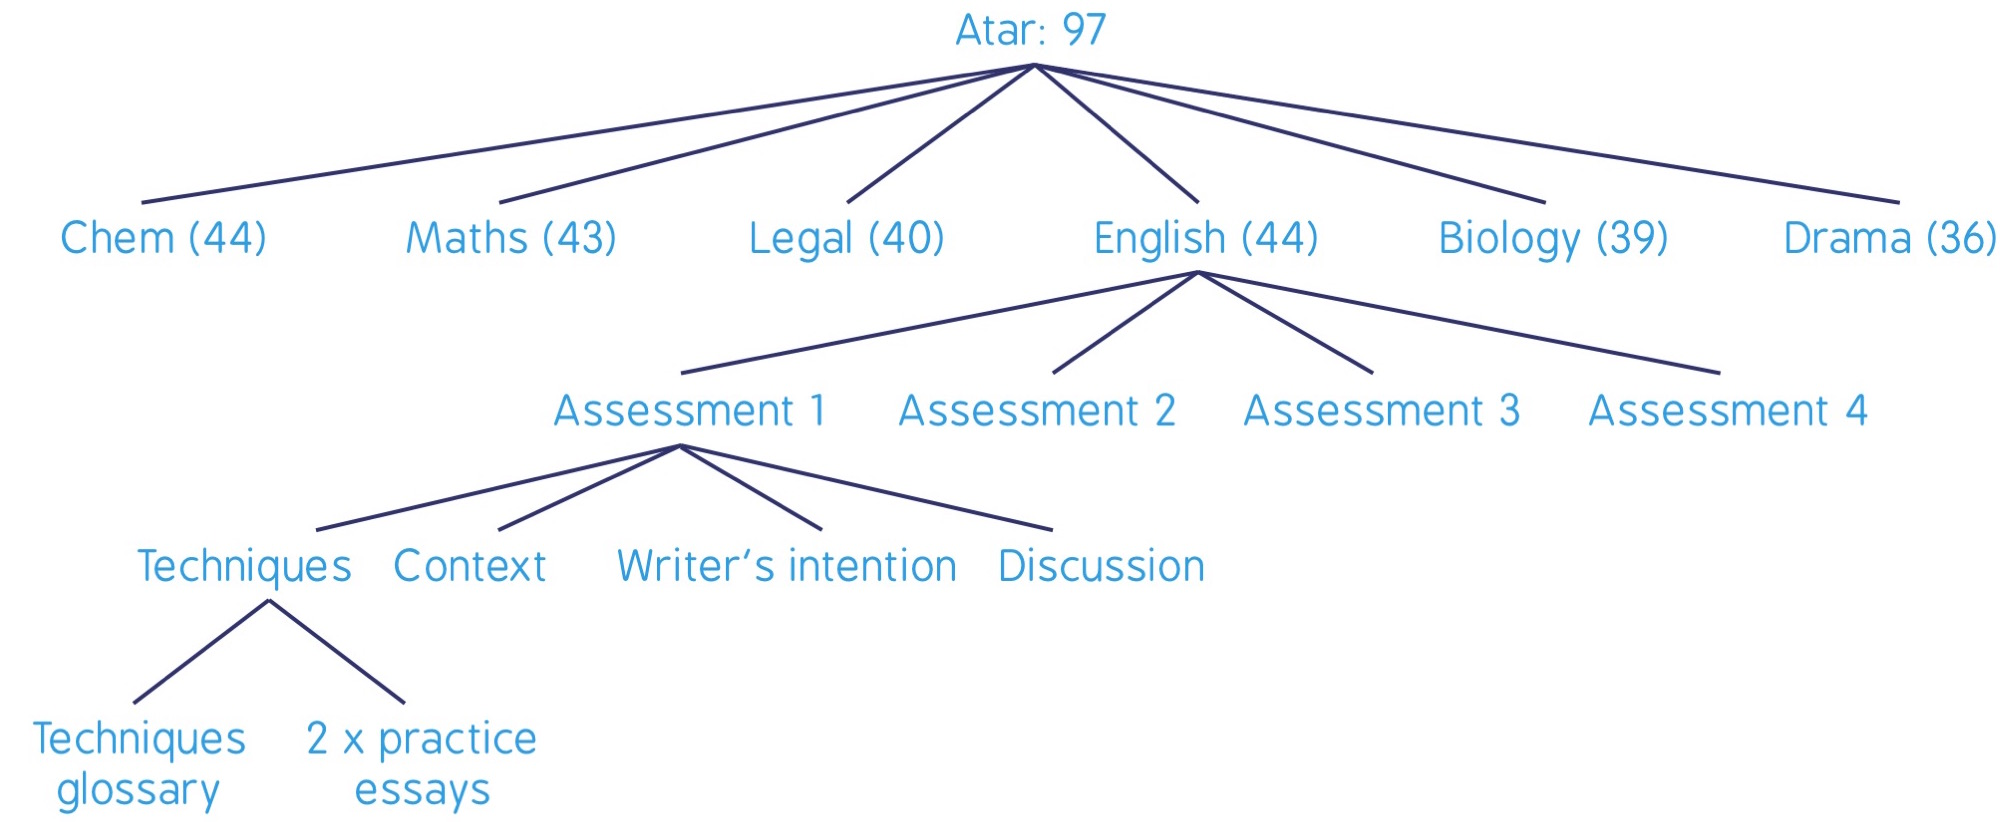 Short term planner elevate education as you can see the atar was broken down into specific subject scores then each subject is broken into its key assessments then each assessment is broken ccuart Choice Image